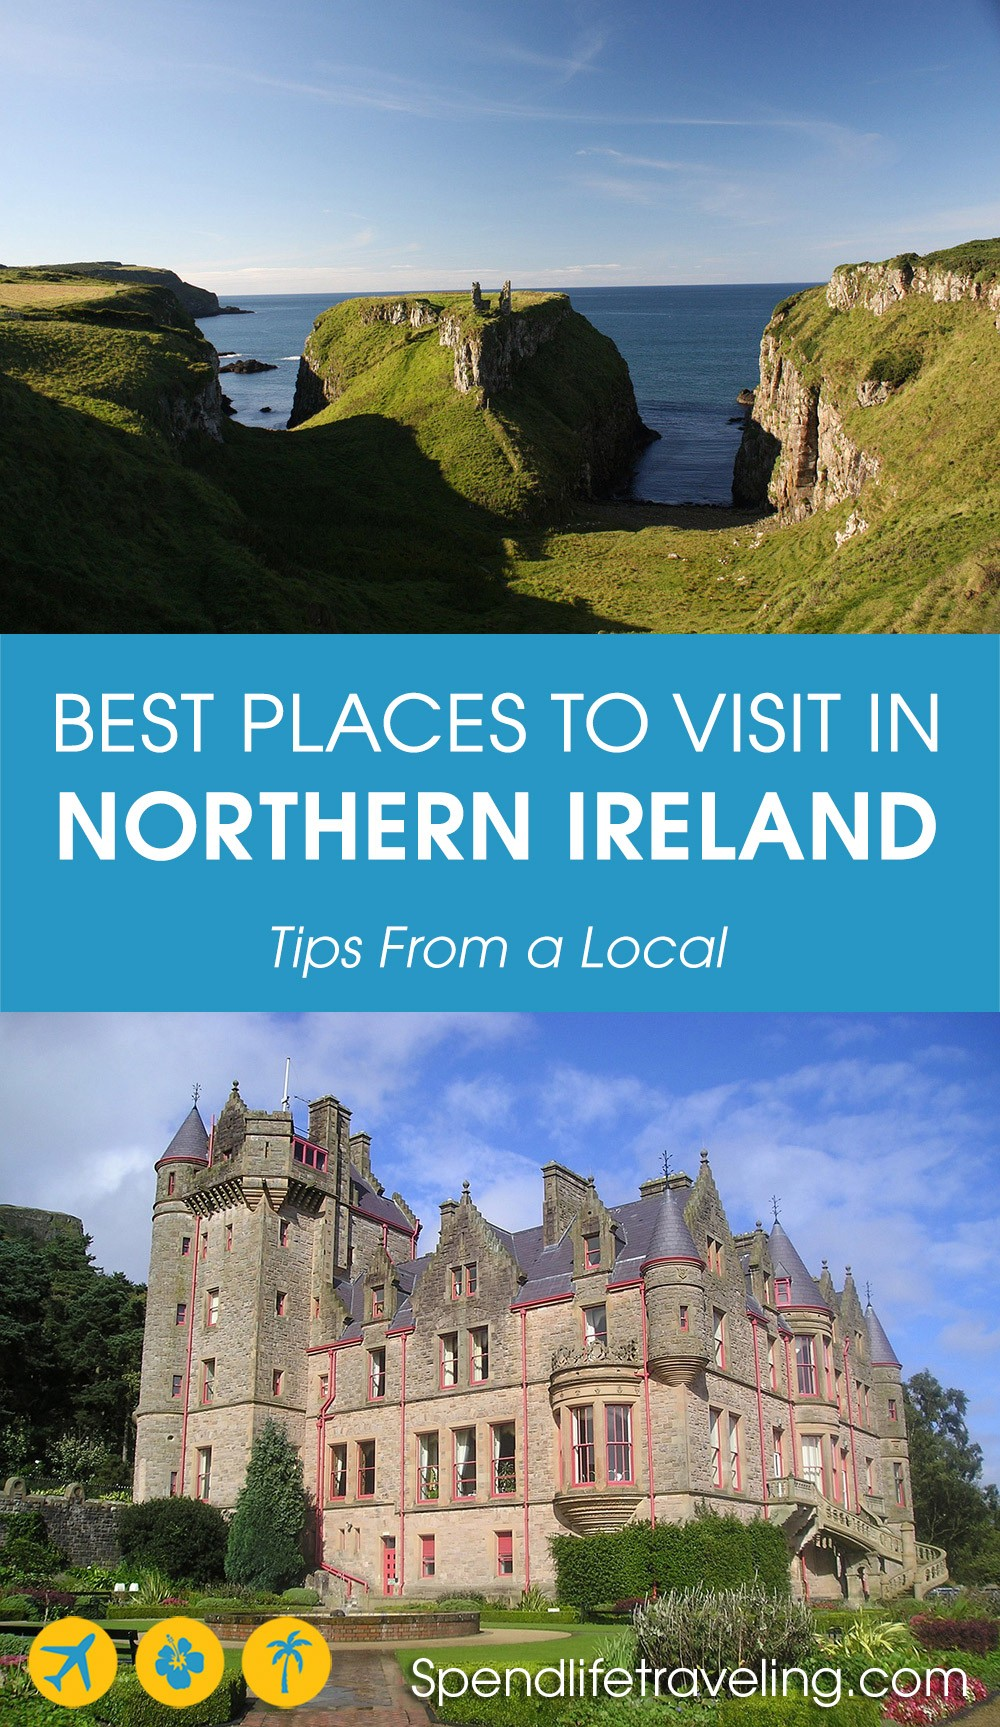 Must-visit places and things to do in Northern Ireland